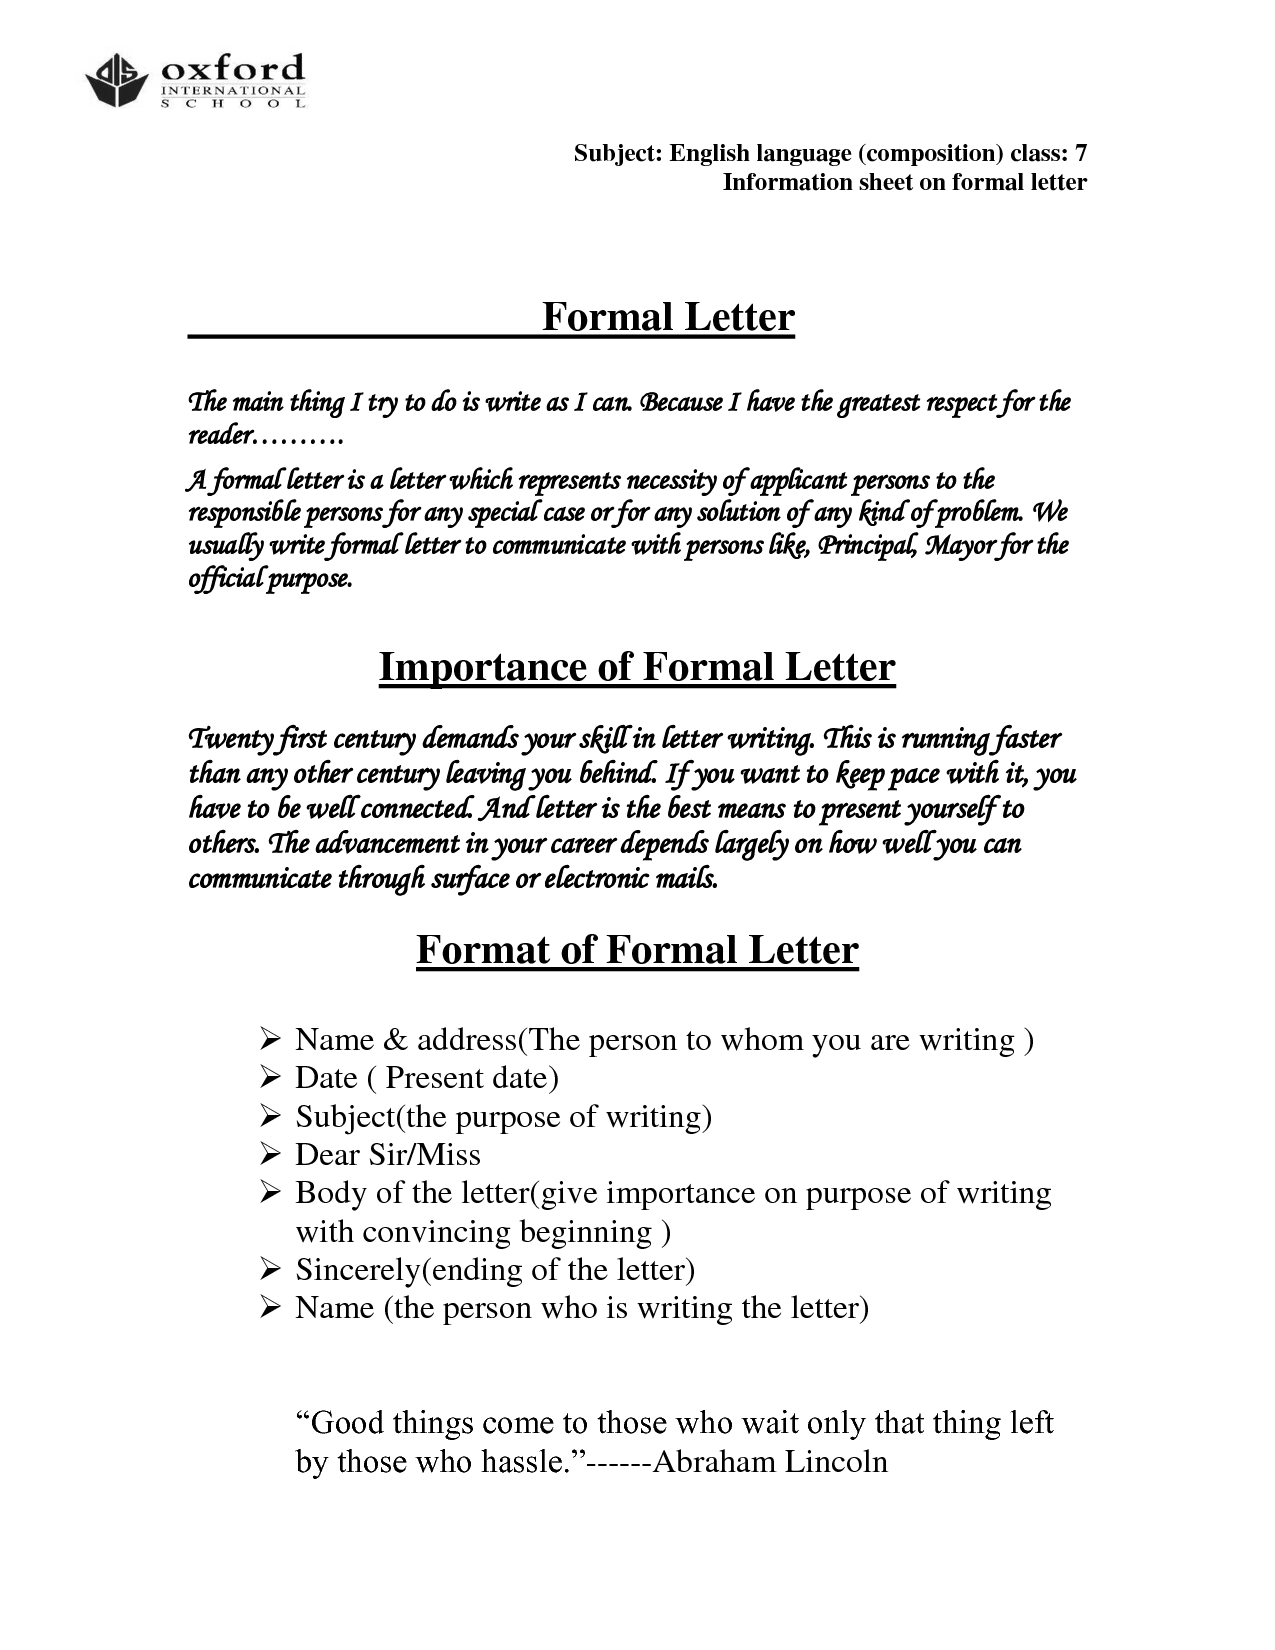 Official letter format templateofficial letter business letter official letter format templateofficial letter business letter sample altavistaventures Choice Image